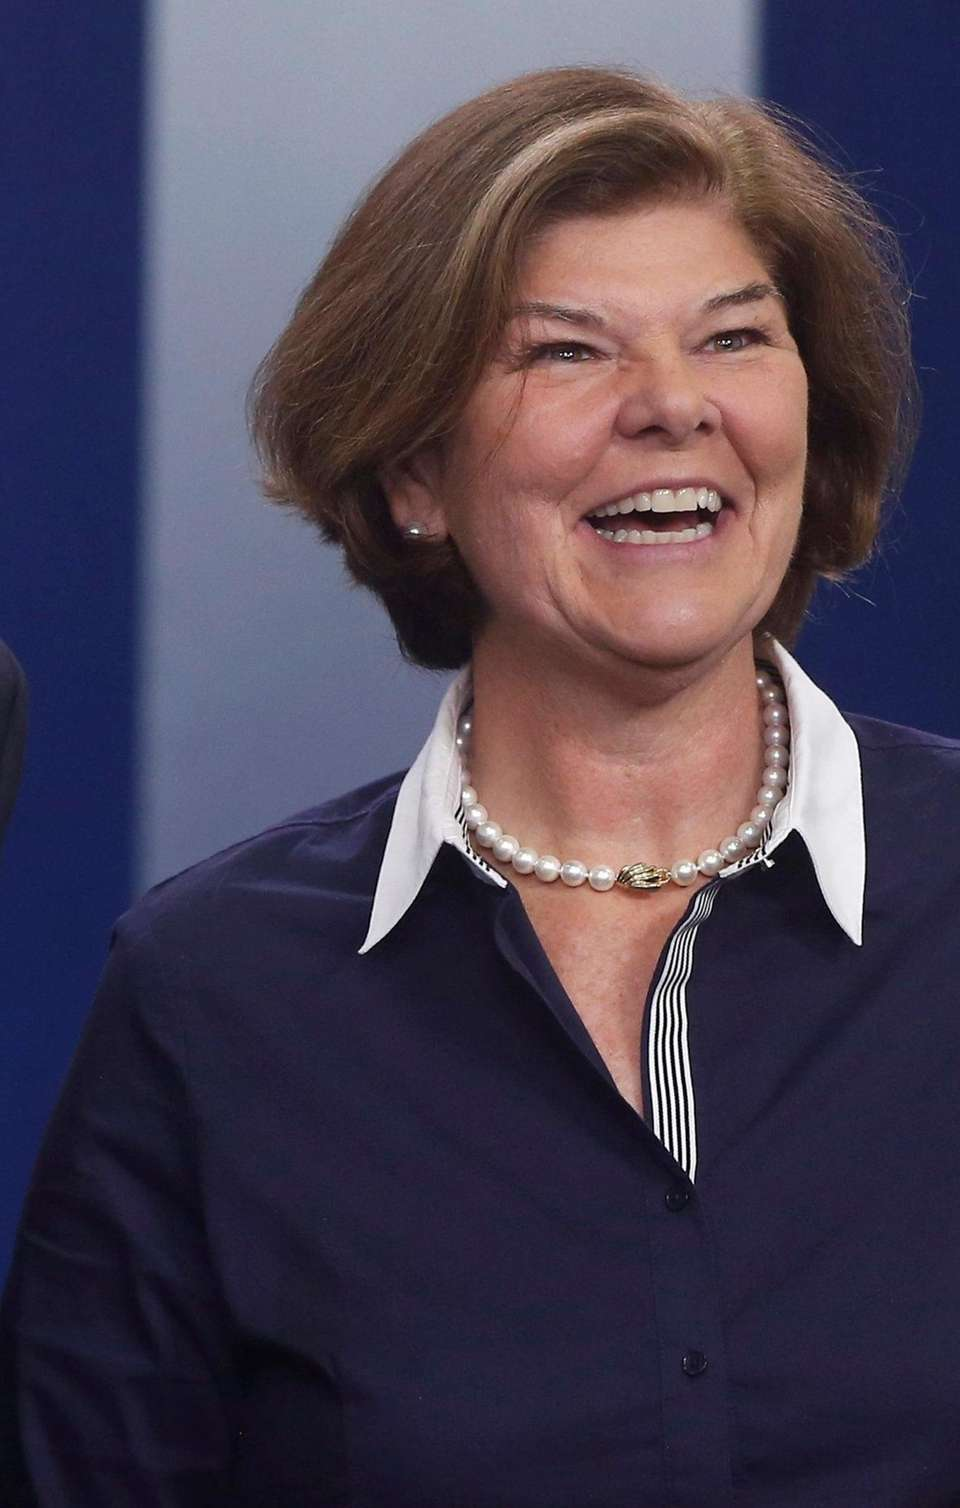 Ann Compton of ABC News, who is retiring